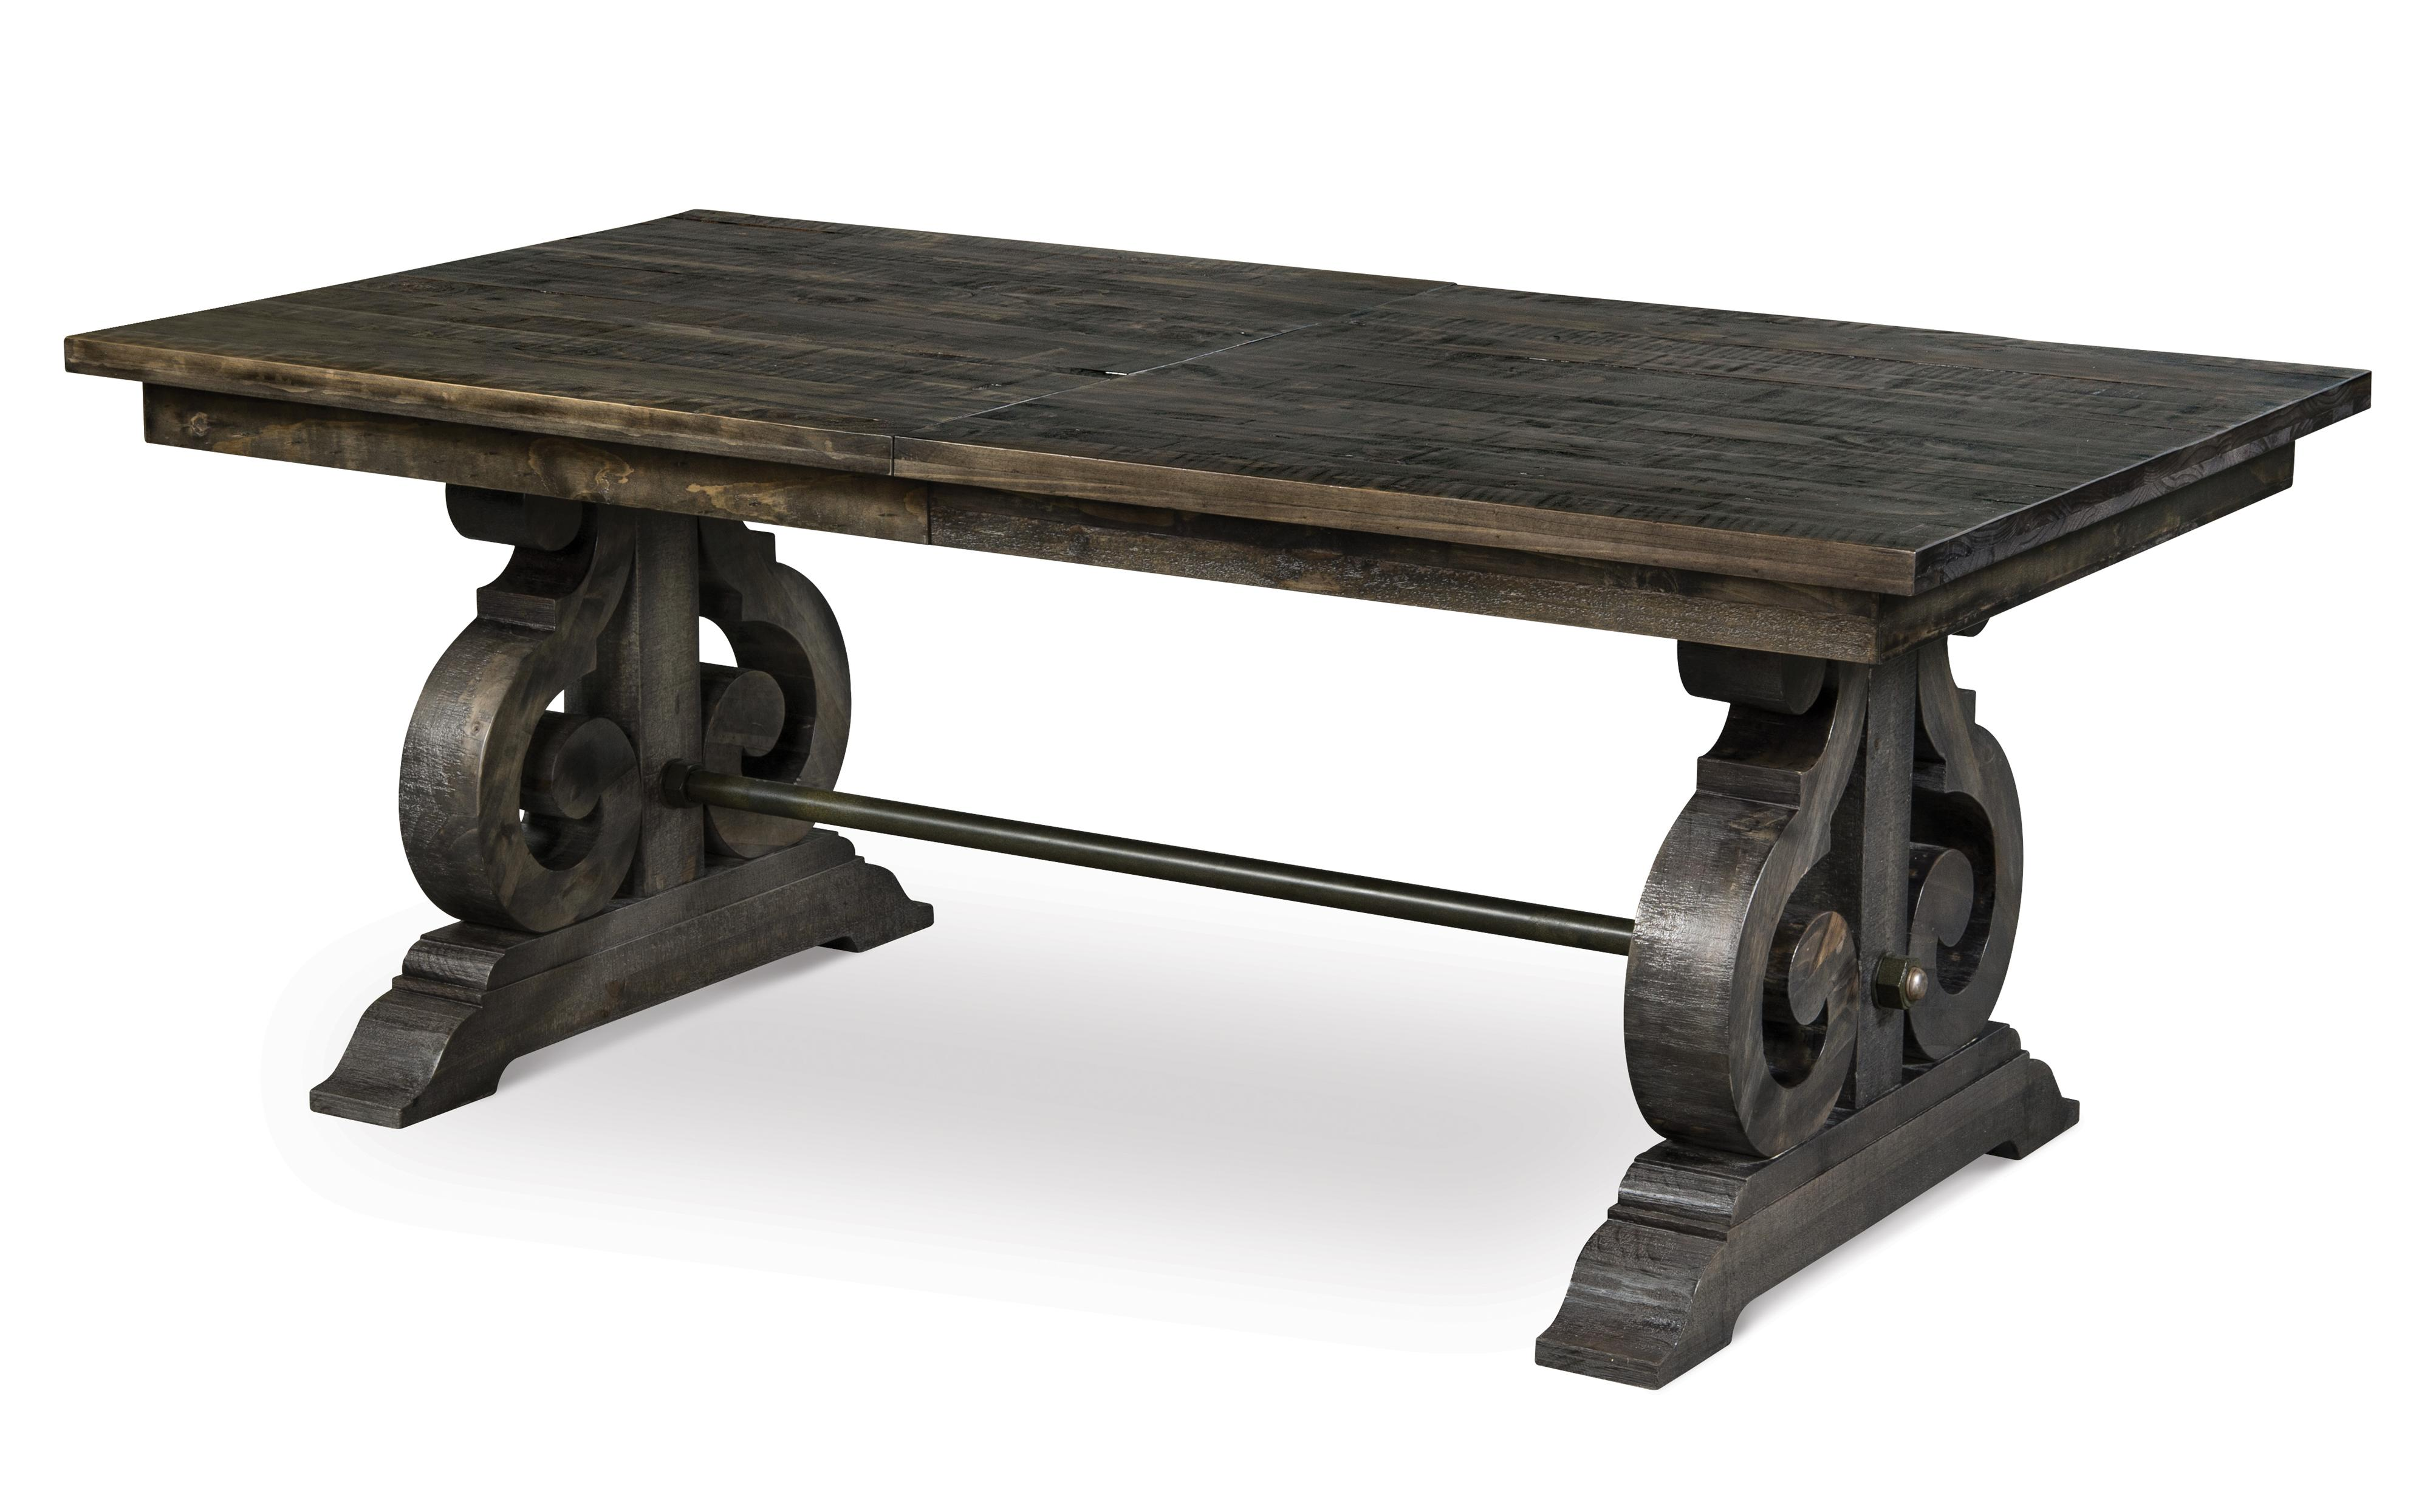 Bellamy Rectangular Dining Table w/ Butterfly Leaves by Magnussen Home at Stoney Creek Furniture